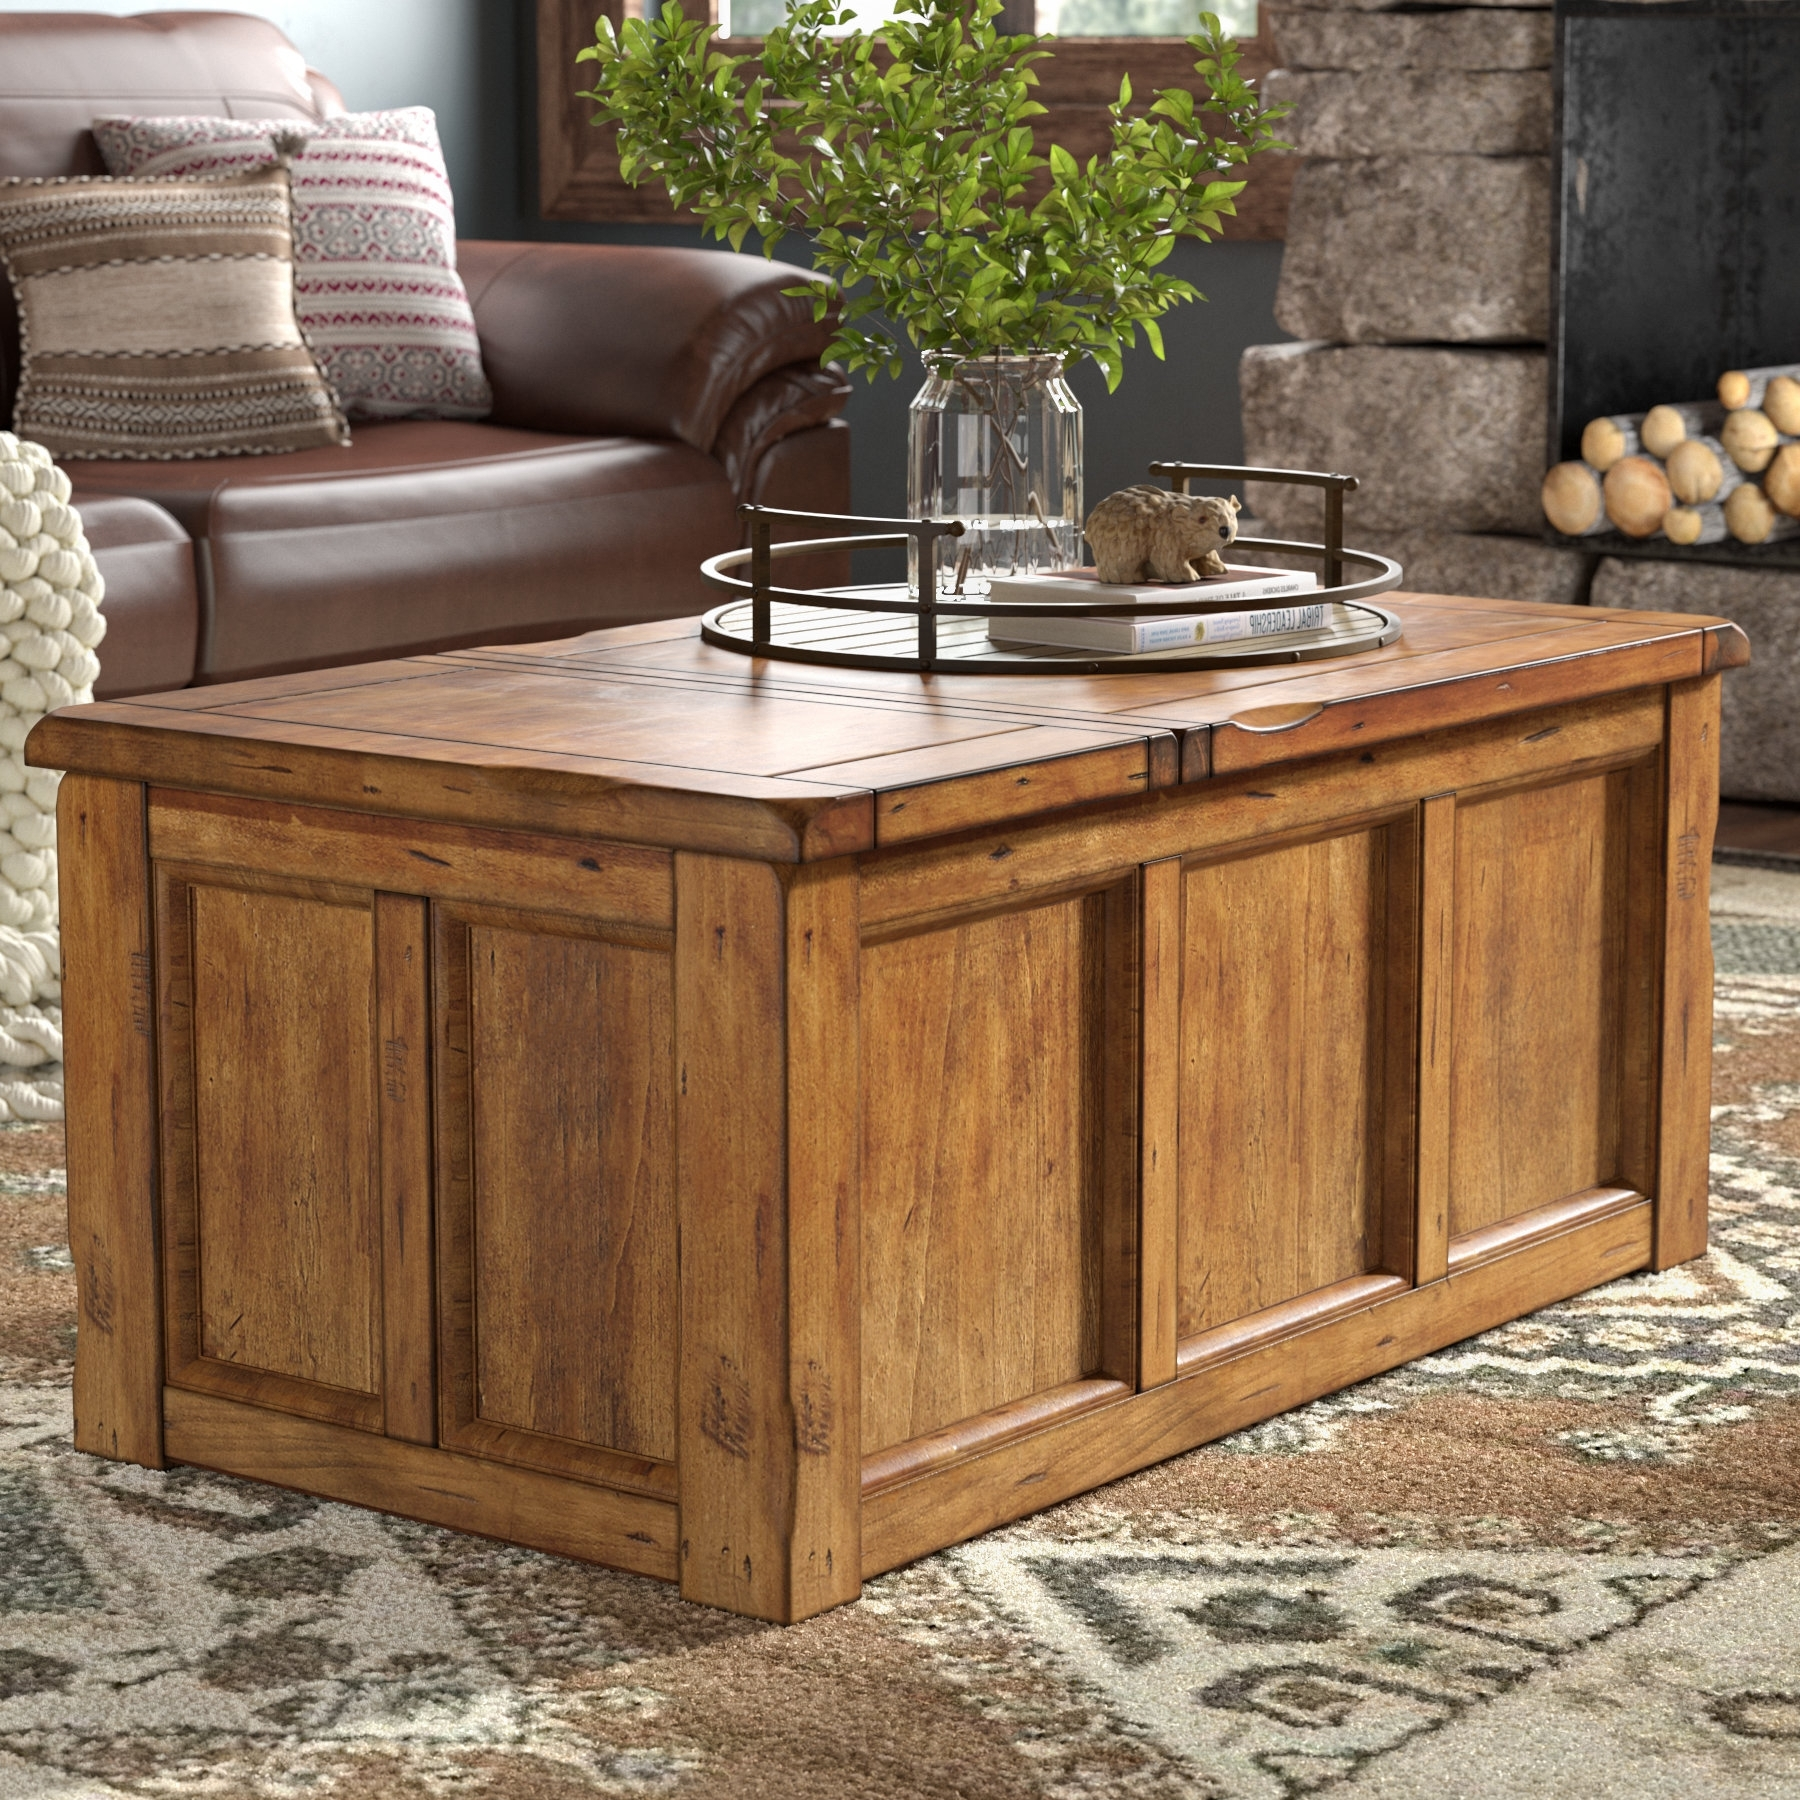 Trendy Large Scale Chinese Farmhouse Coffee Tables Inside Laurel Foundry Modern Farmhouse Baggarly Coffee Table With Lift Top (View 15 of 20)